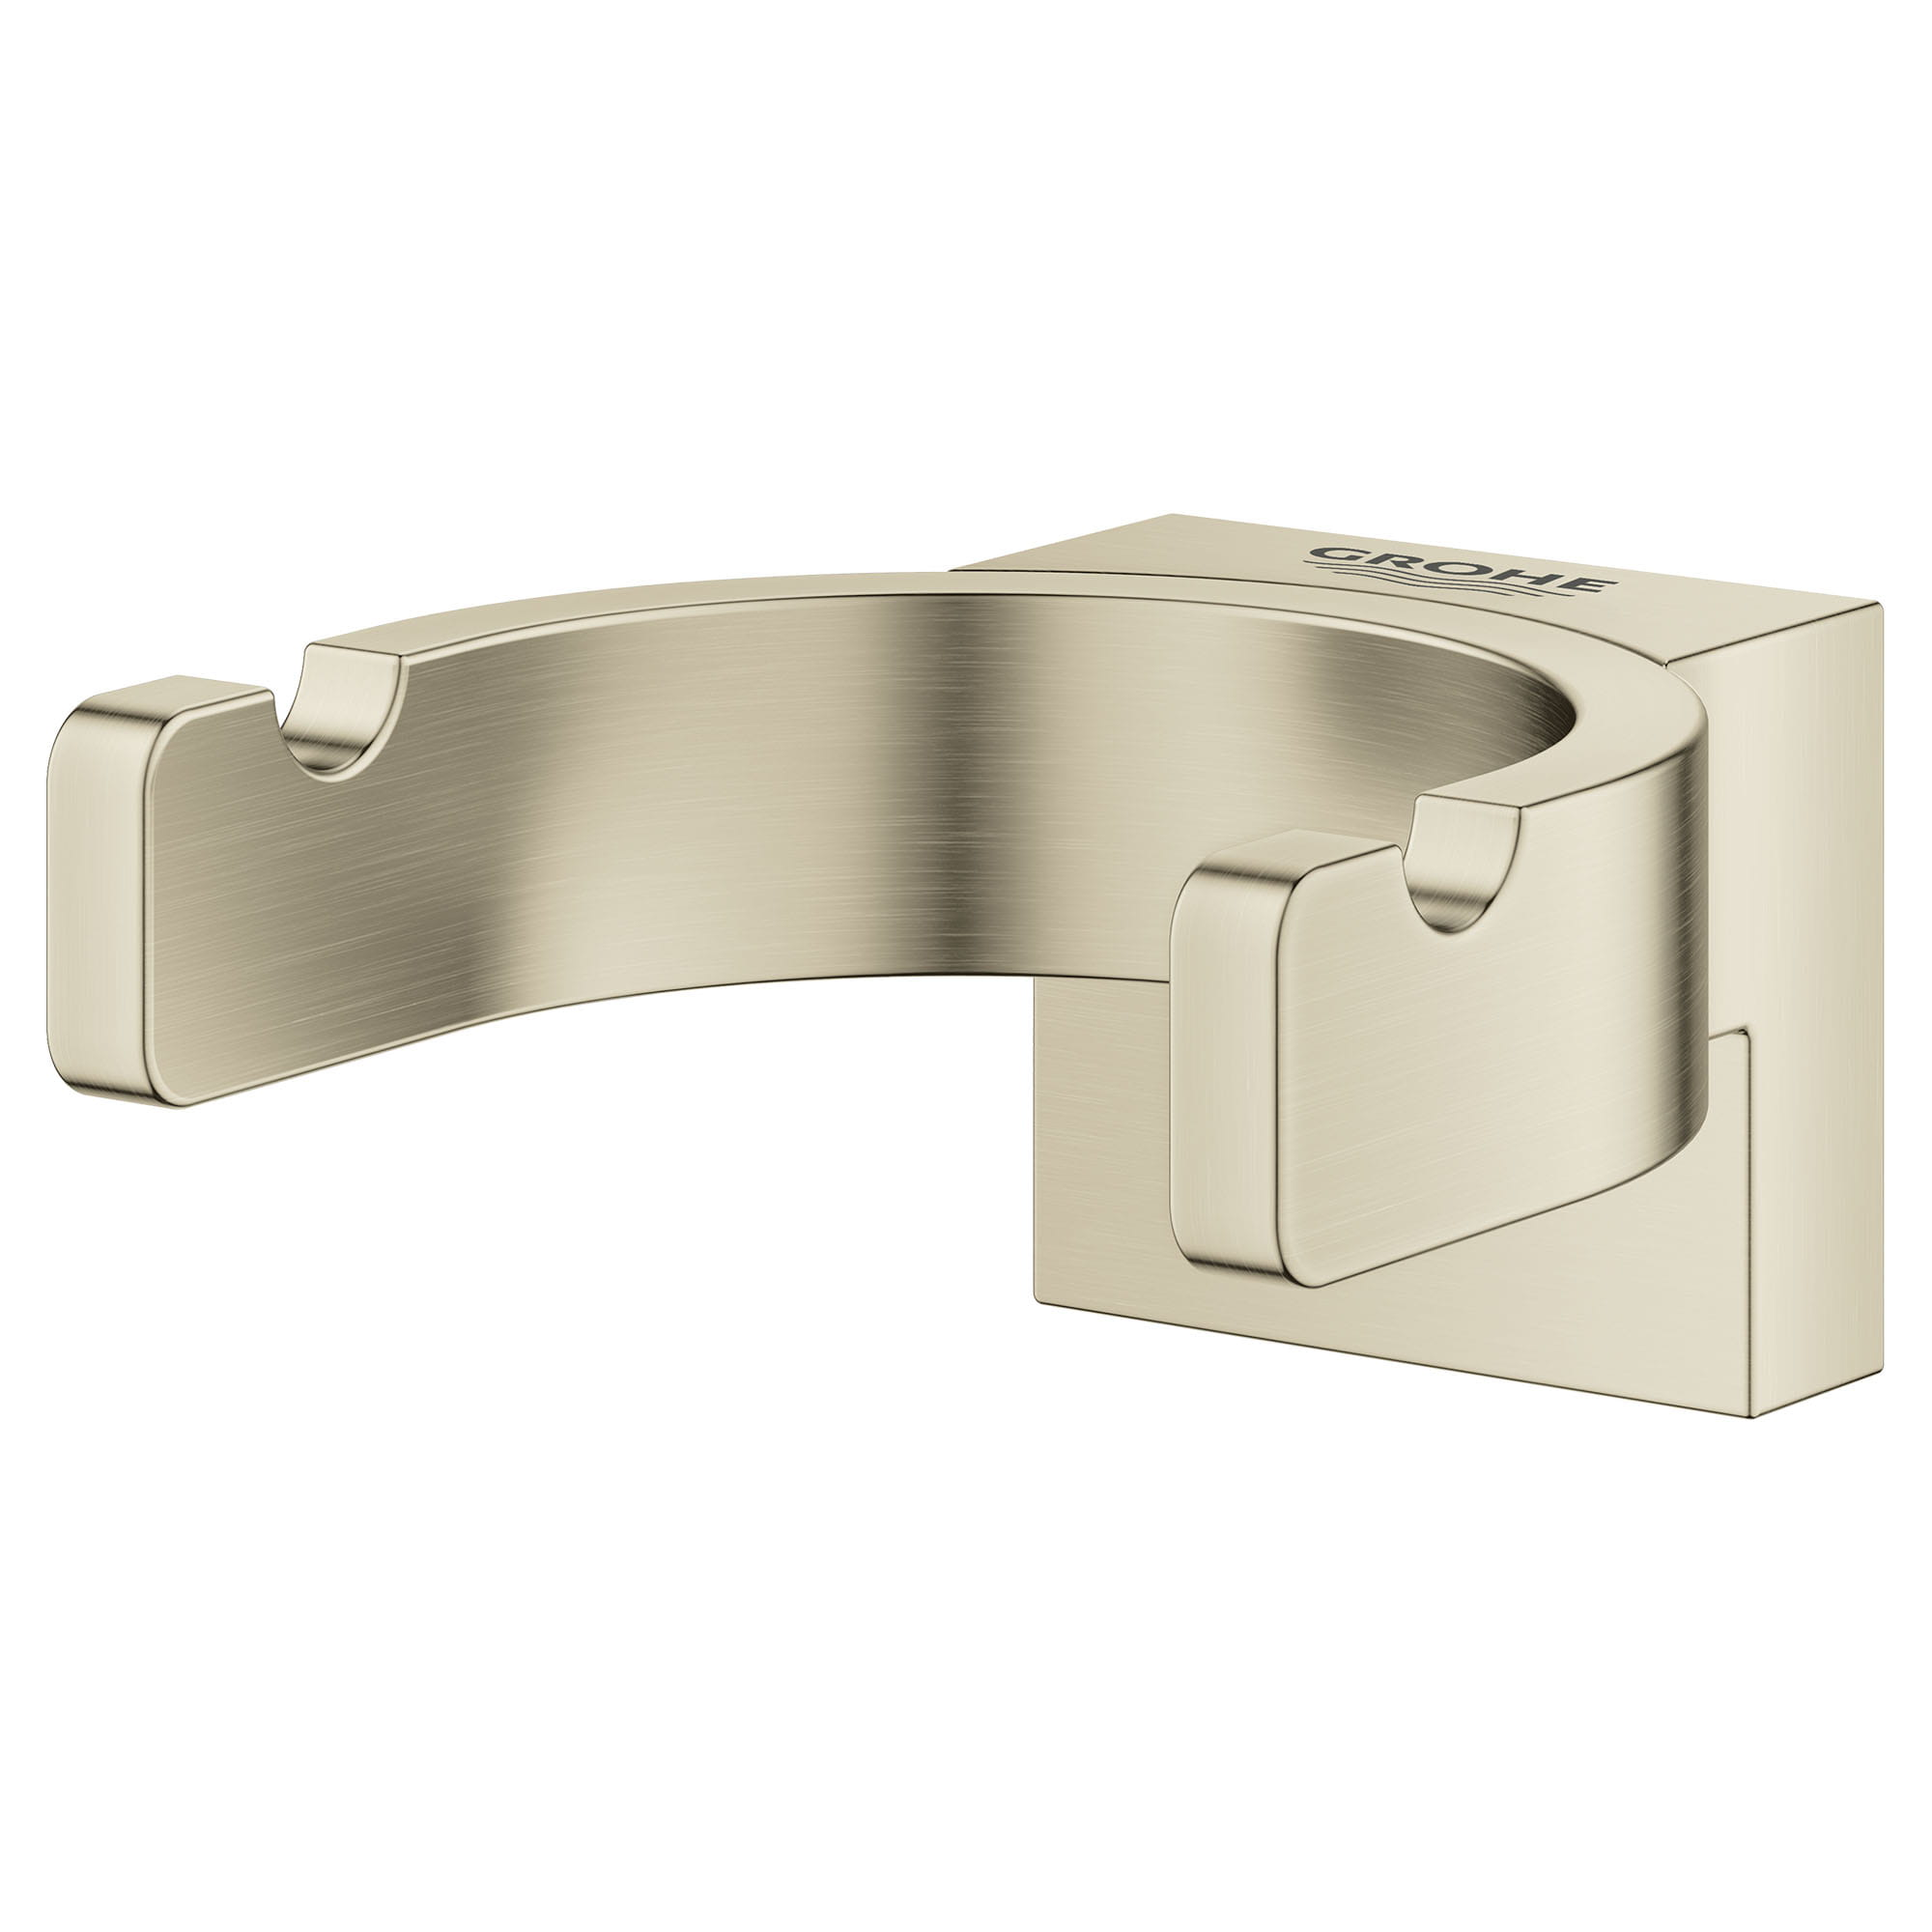 Crochet double pour peignoirs GROHE BRUSHED NICKEL